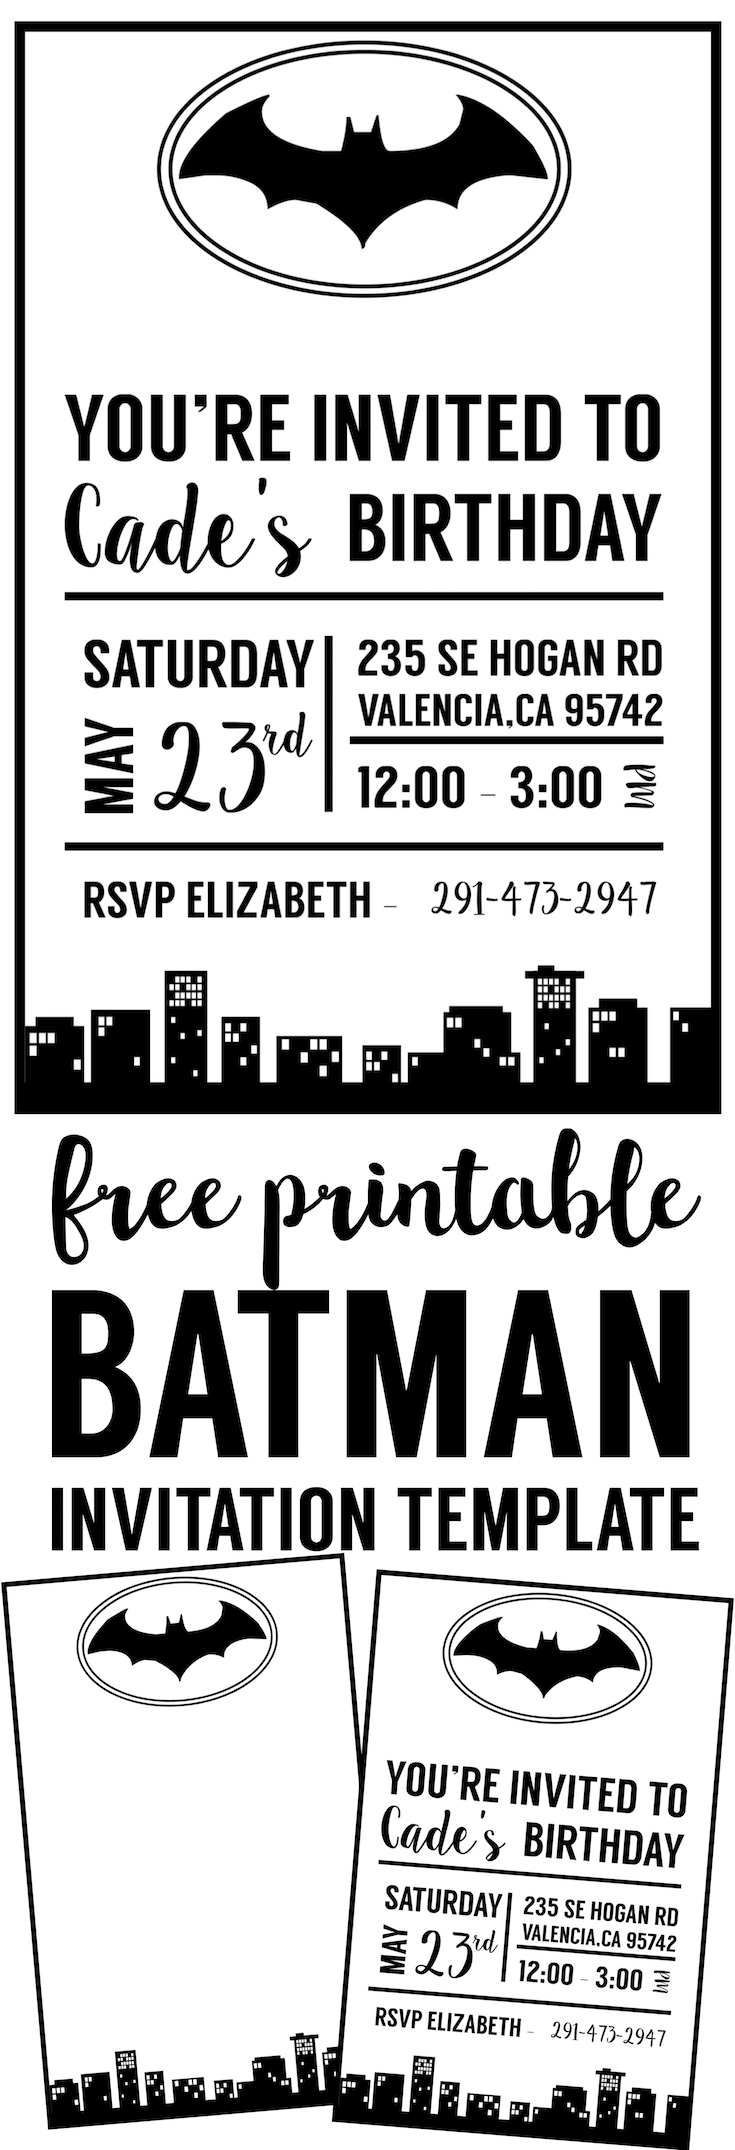 Free Batman Invitation Template printable for a Batman birthday party, Halloween party, or baby shower. Use this batman party invitations printable to DIY your Batman party invitations.